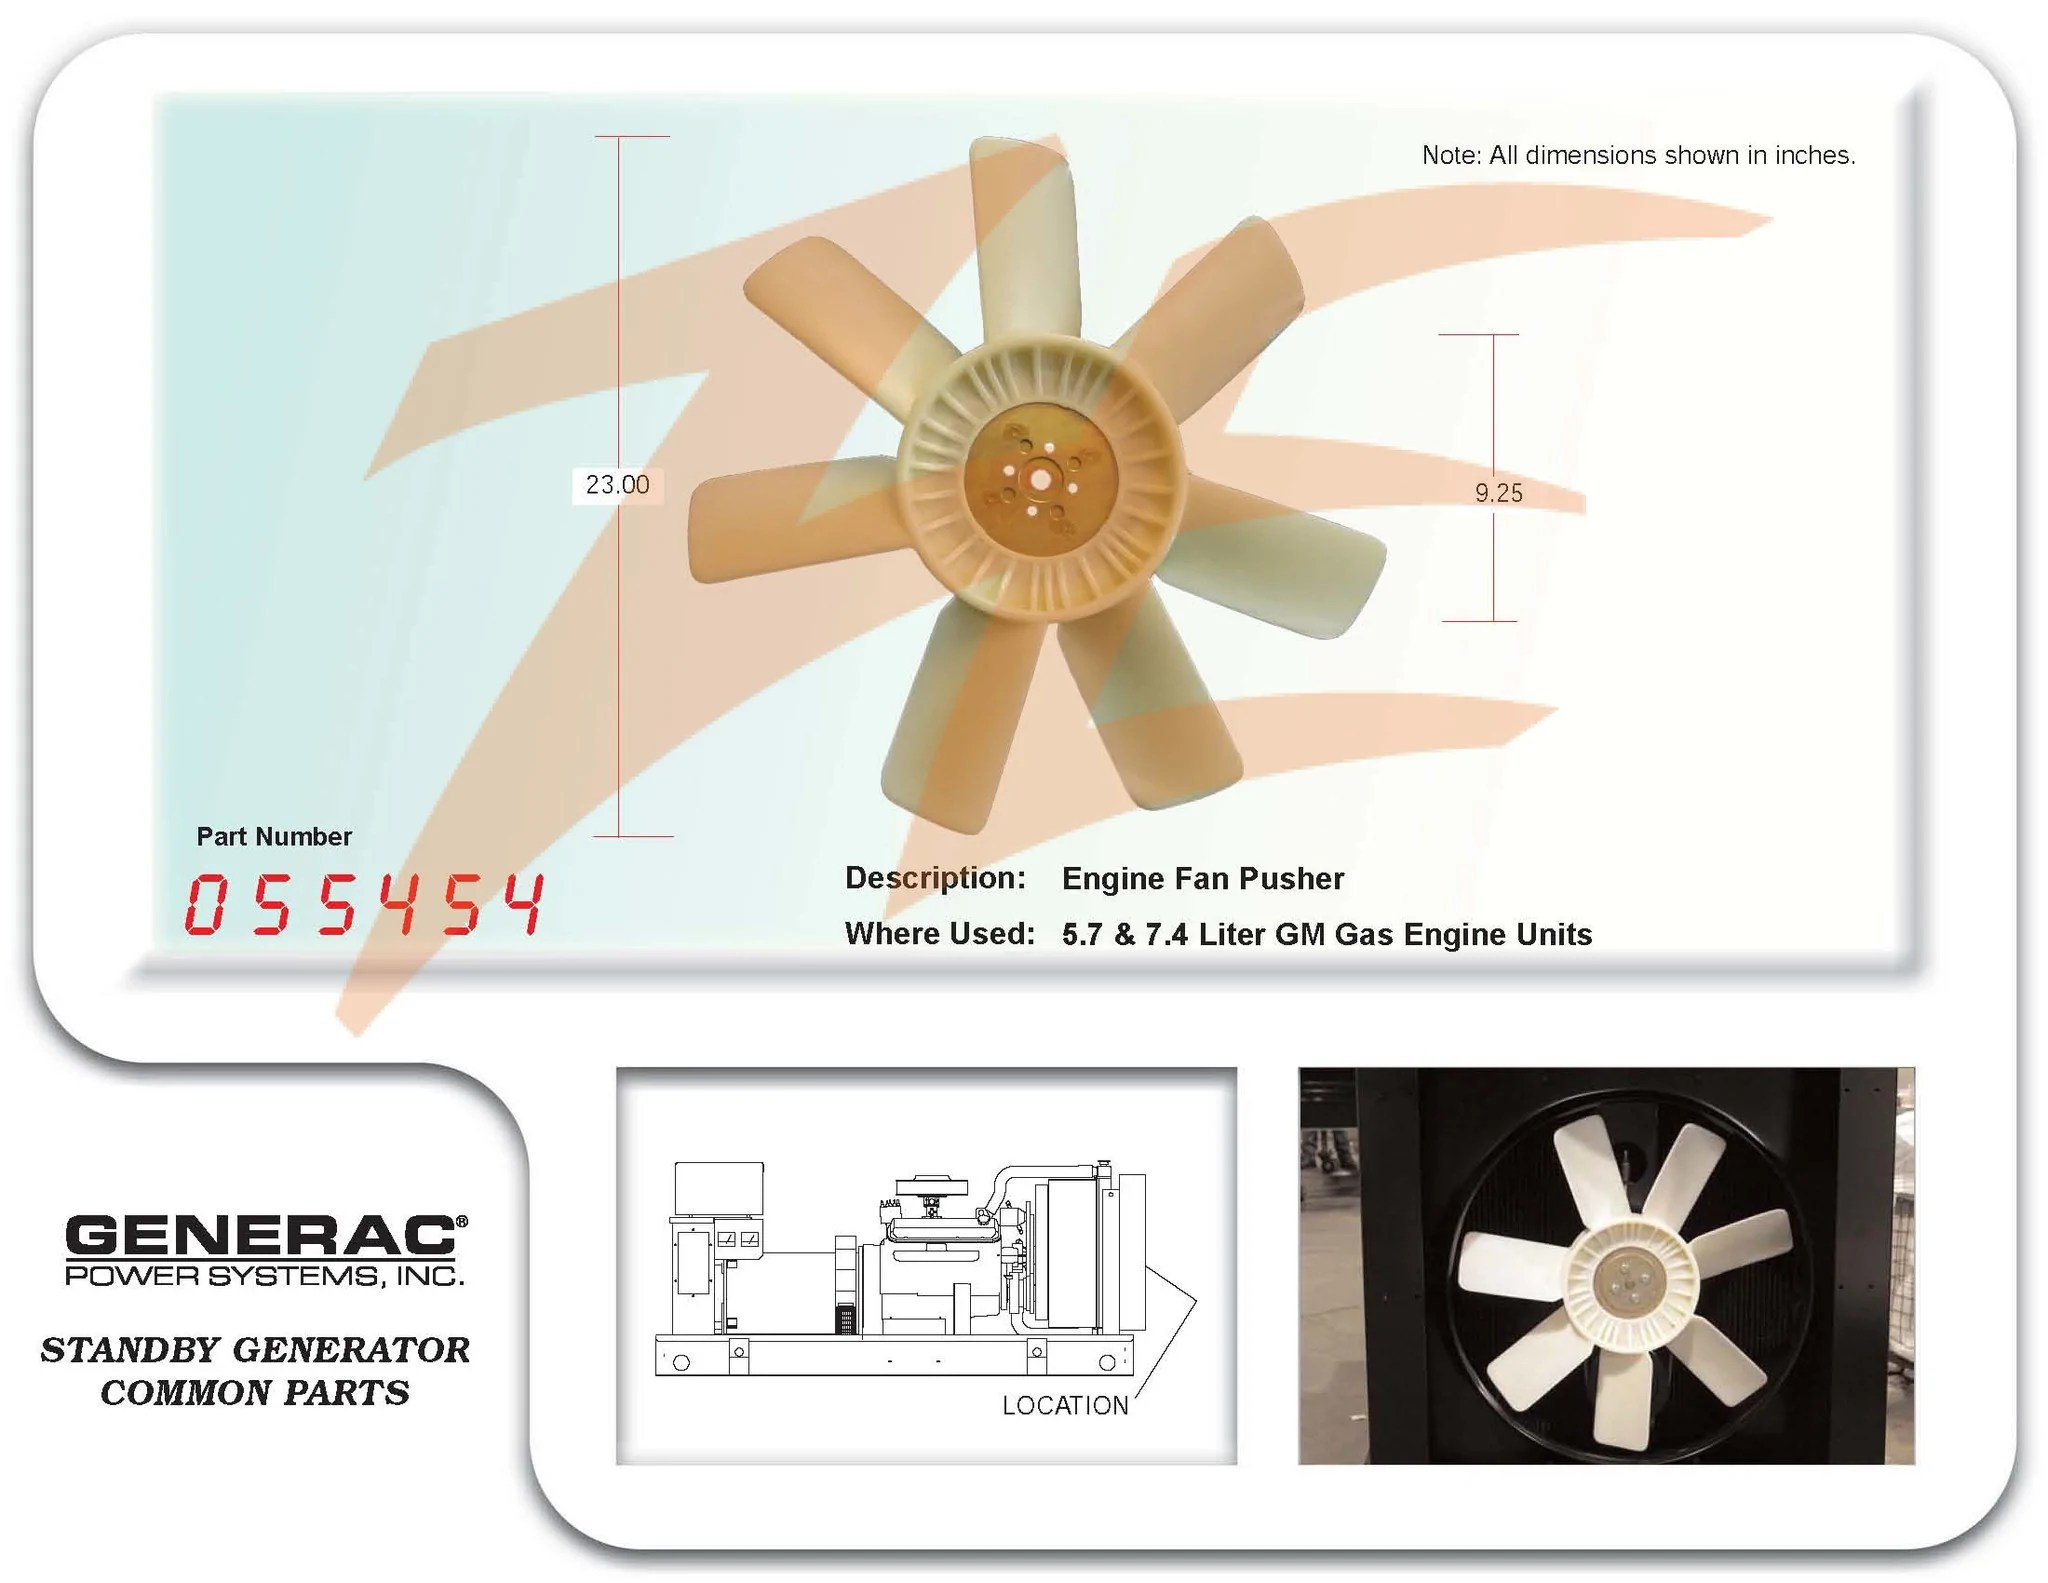 small resolution of generac 055454 engine cooling fan pusher 5 7 7 4l